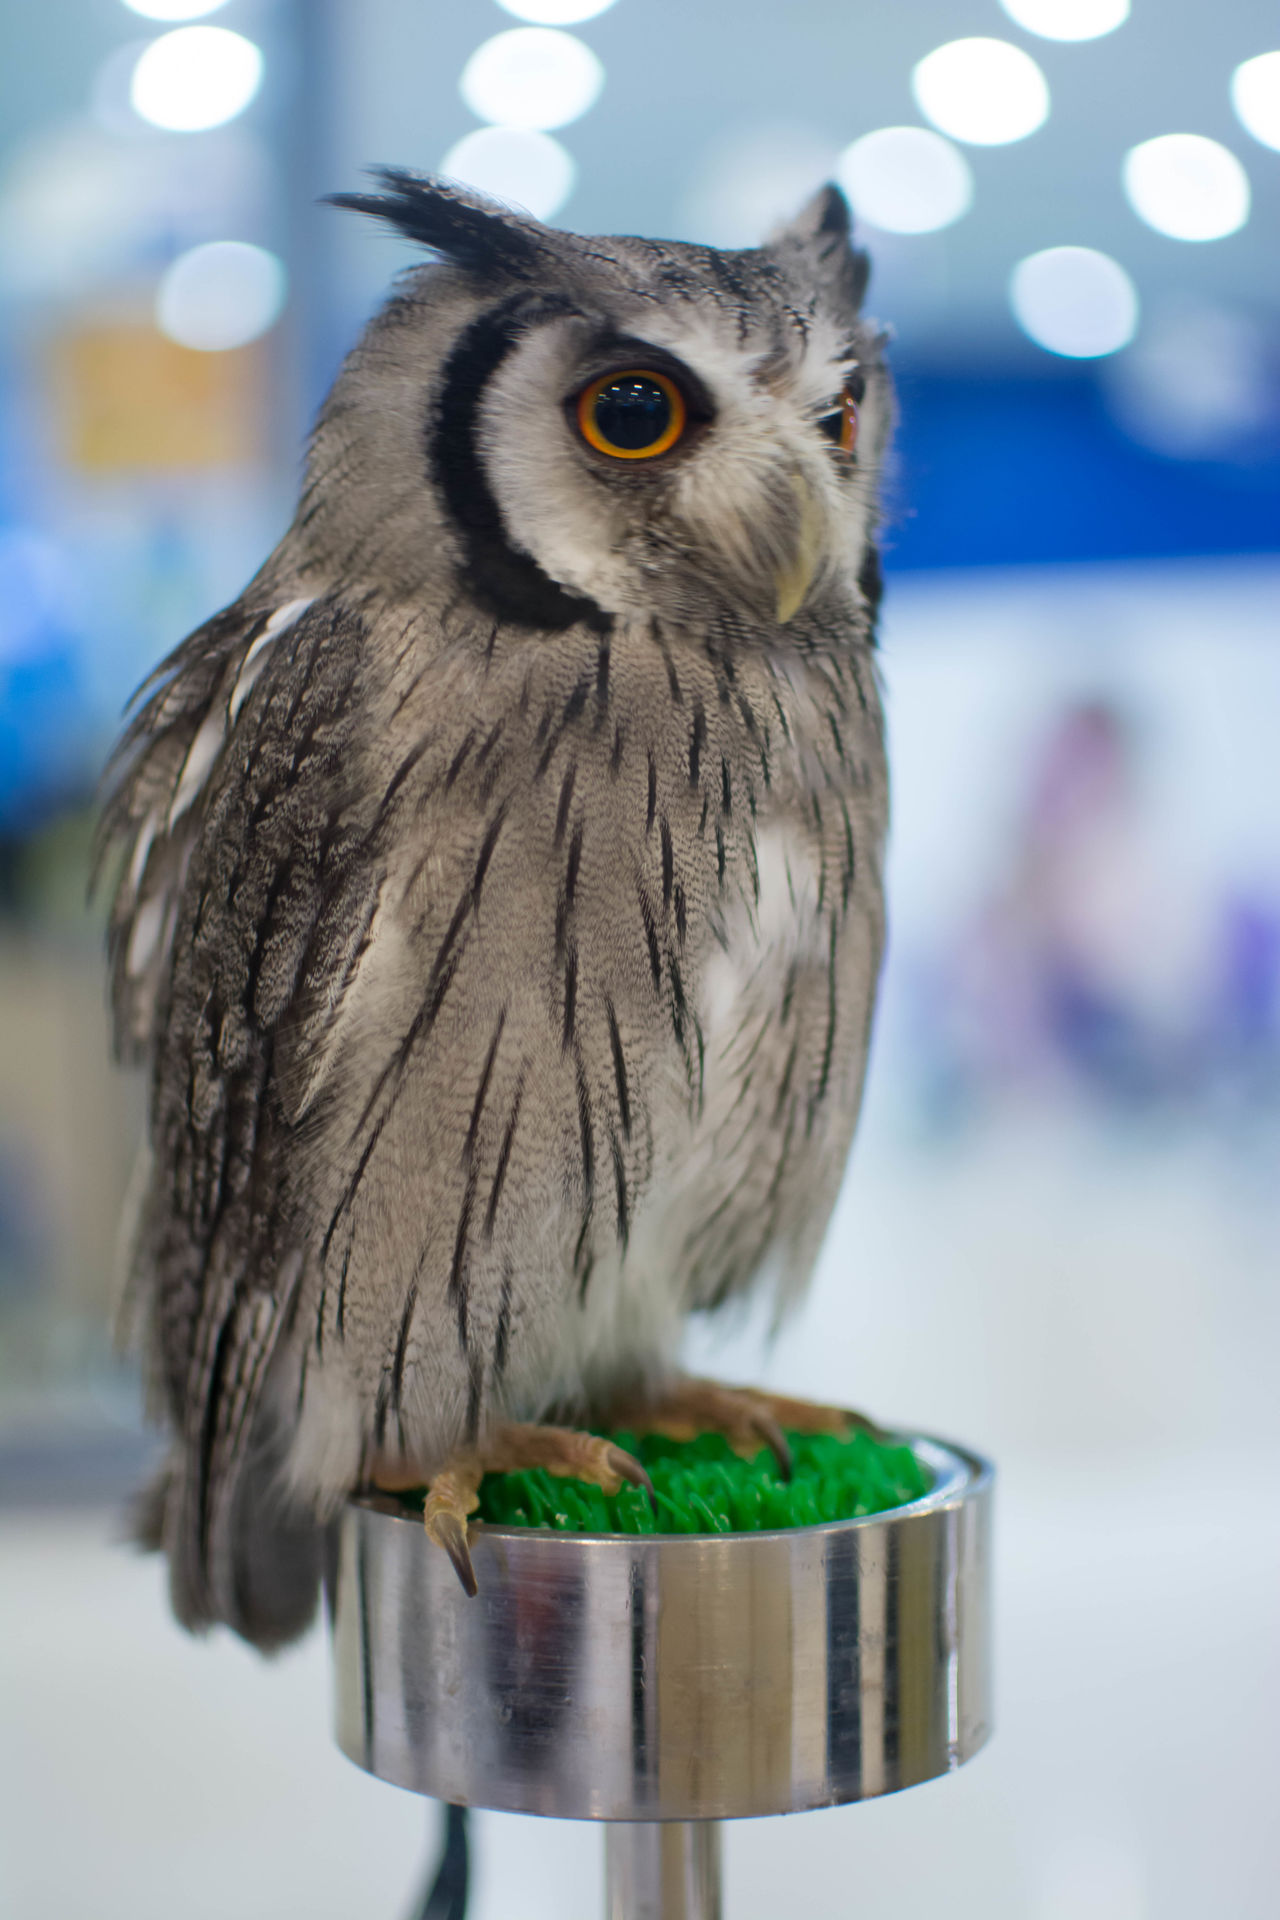 owl Animal Themes Animal Wildlife Animals In The Wild Bird Close-up Cute Cute Pets Day Focus On Foreground No People One Animal Outdoors Owl Owl Eyes Perching